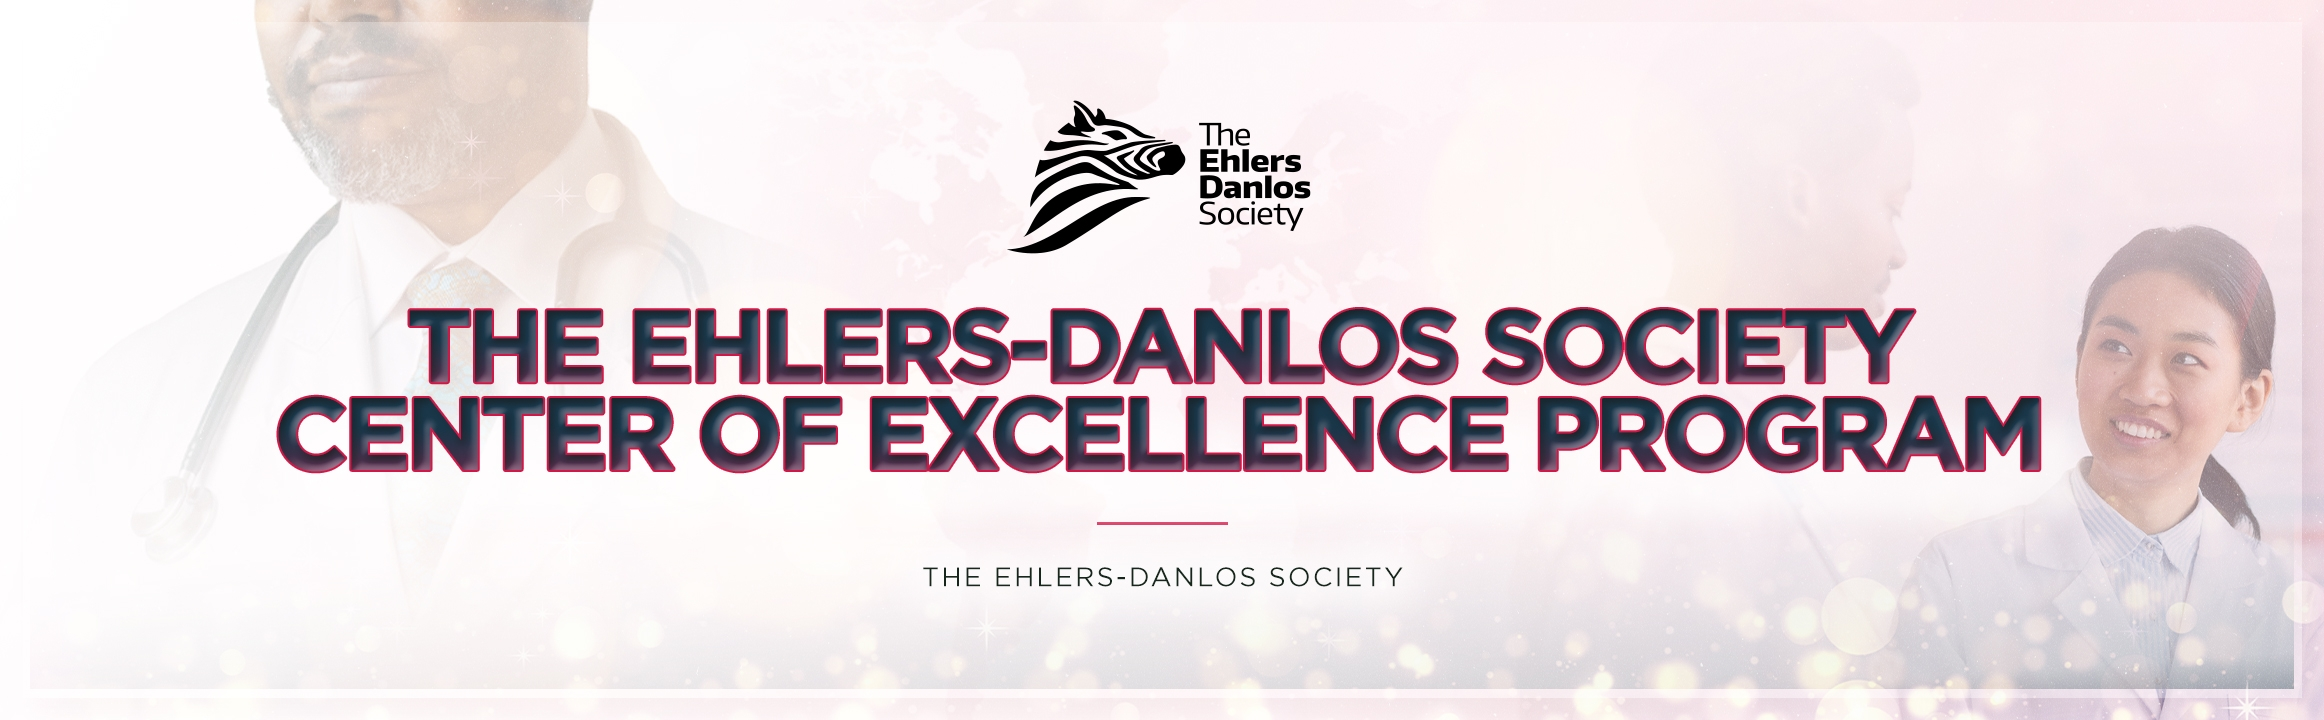 The Ehlers-Danlos Society Center of Excellence Program